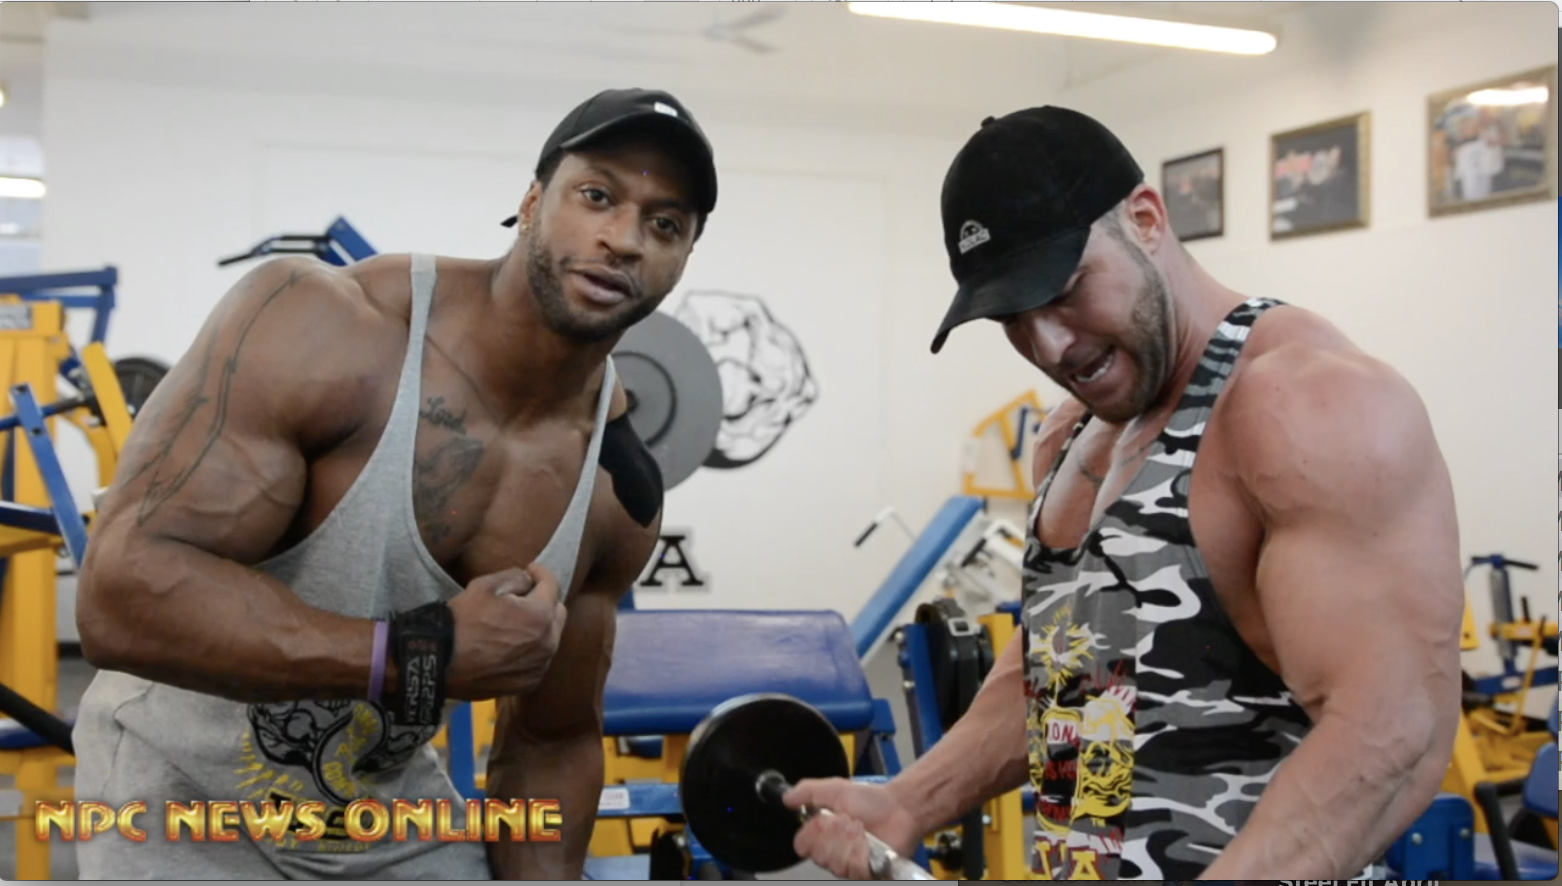 IFBB Pro Raymont Edmonds & NPC Competitor Aladino Dinardo Arms Workout In Prep For The 2018 NPC Pittsburgh Pro